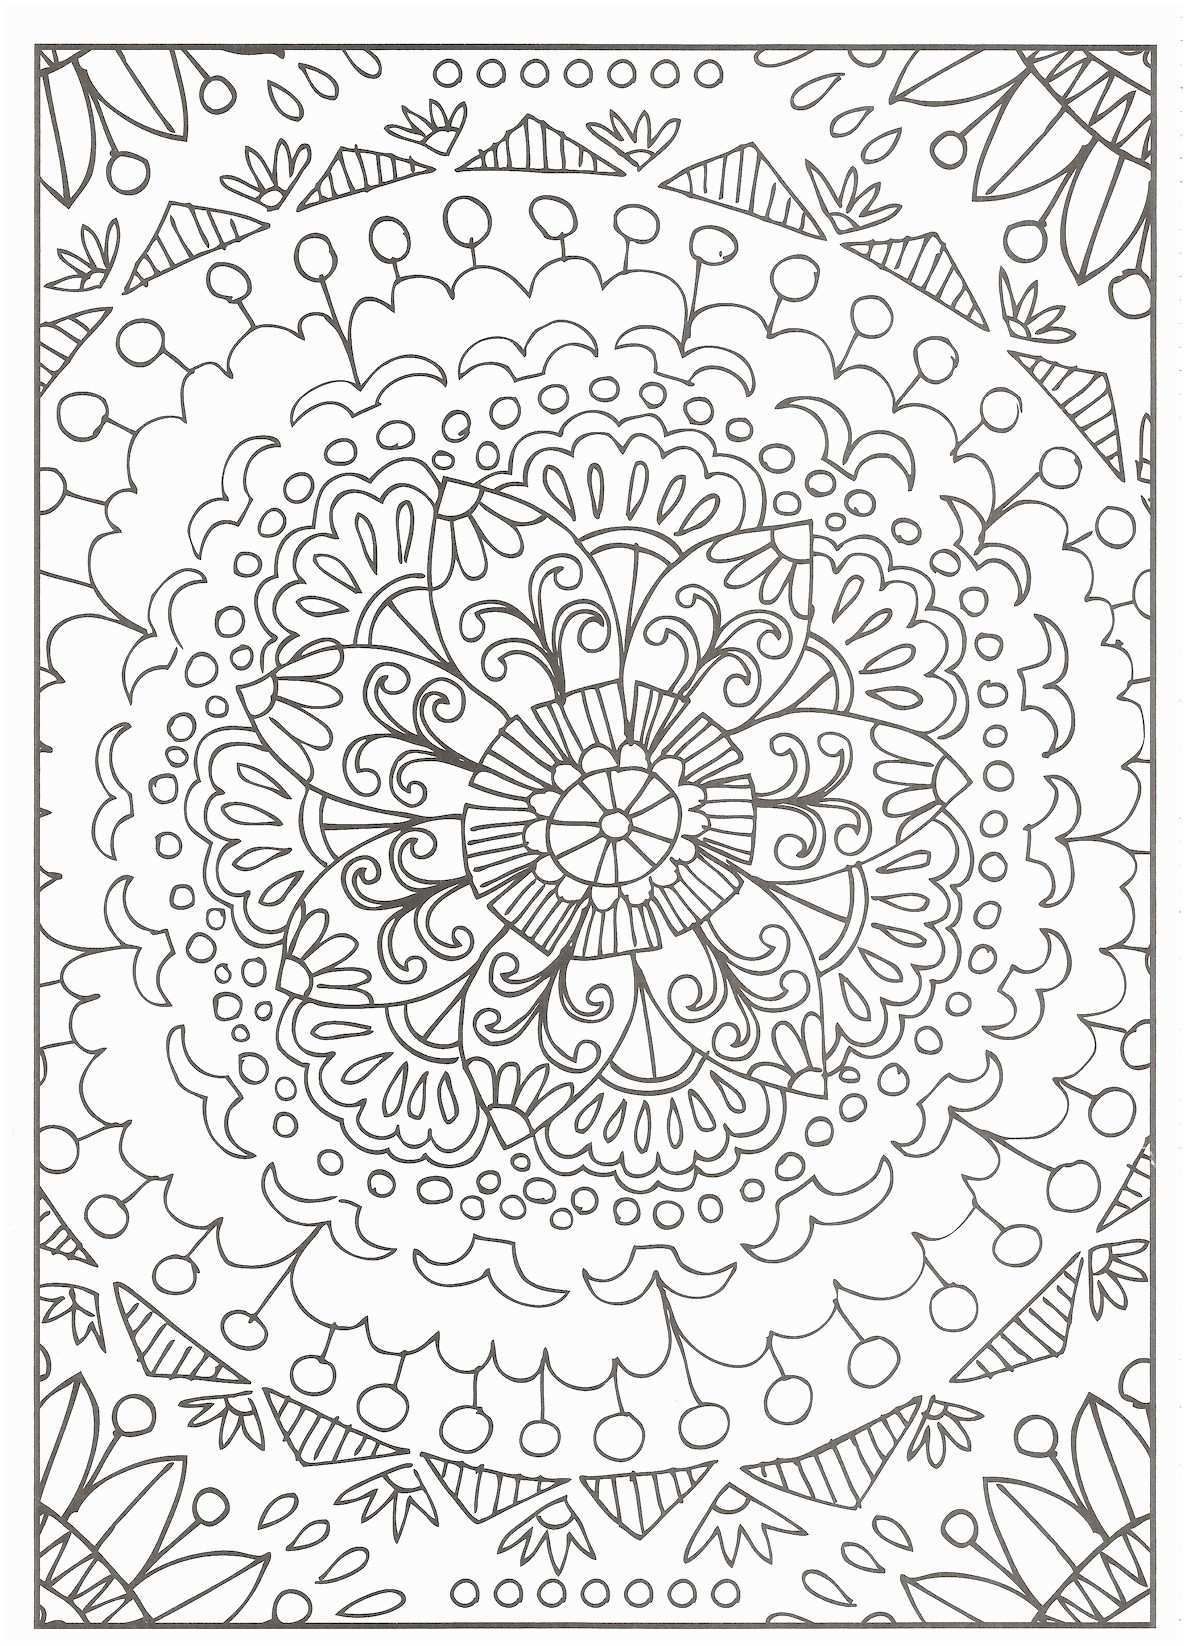 Printable Mitten Coloring Page Free Coloring Pages Mittens New Mitten Coloring Page Coloring Pages